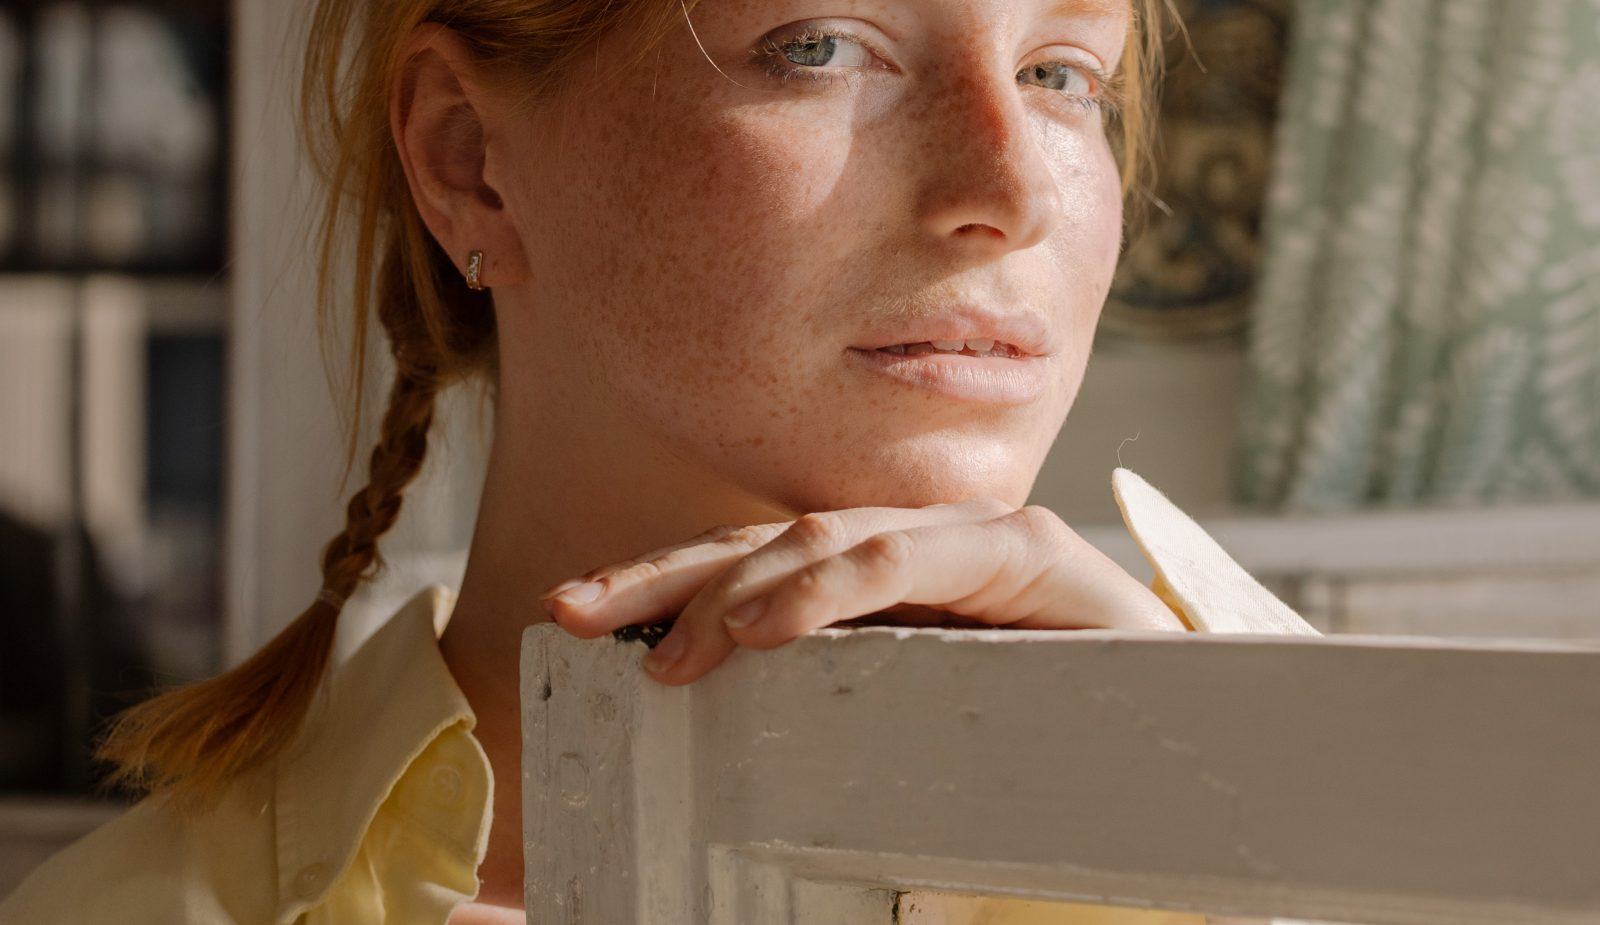 If You Have Freckles, Here's Some Skincare Advice